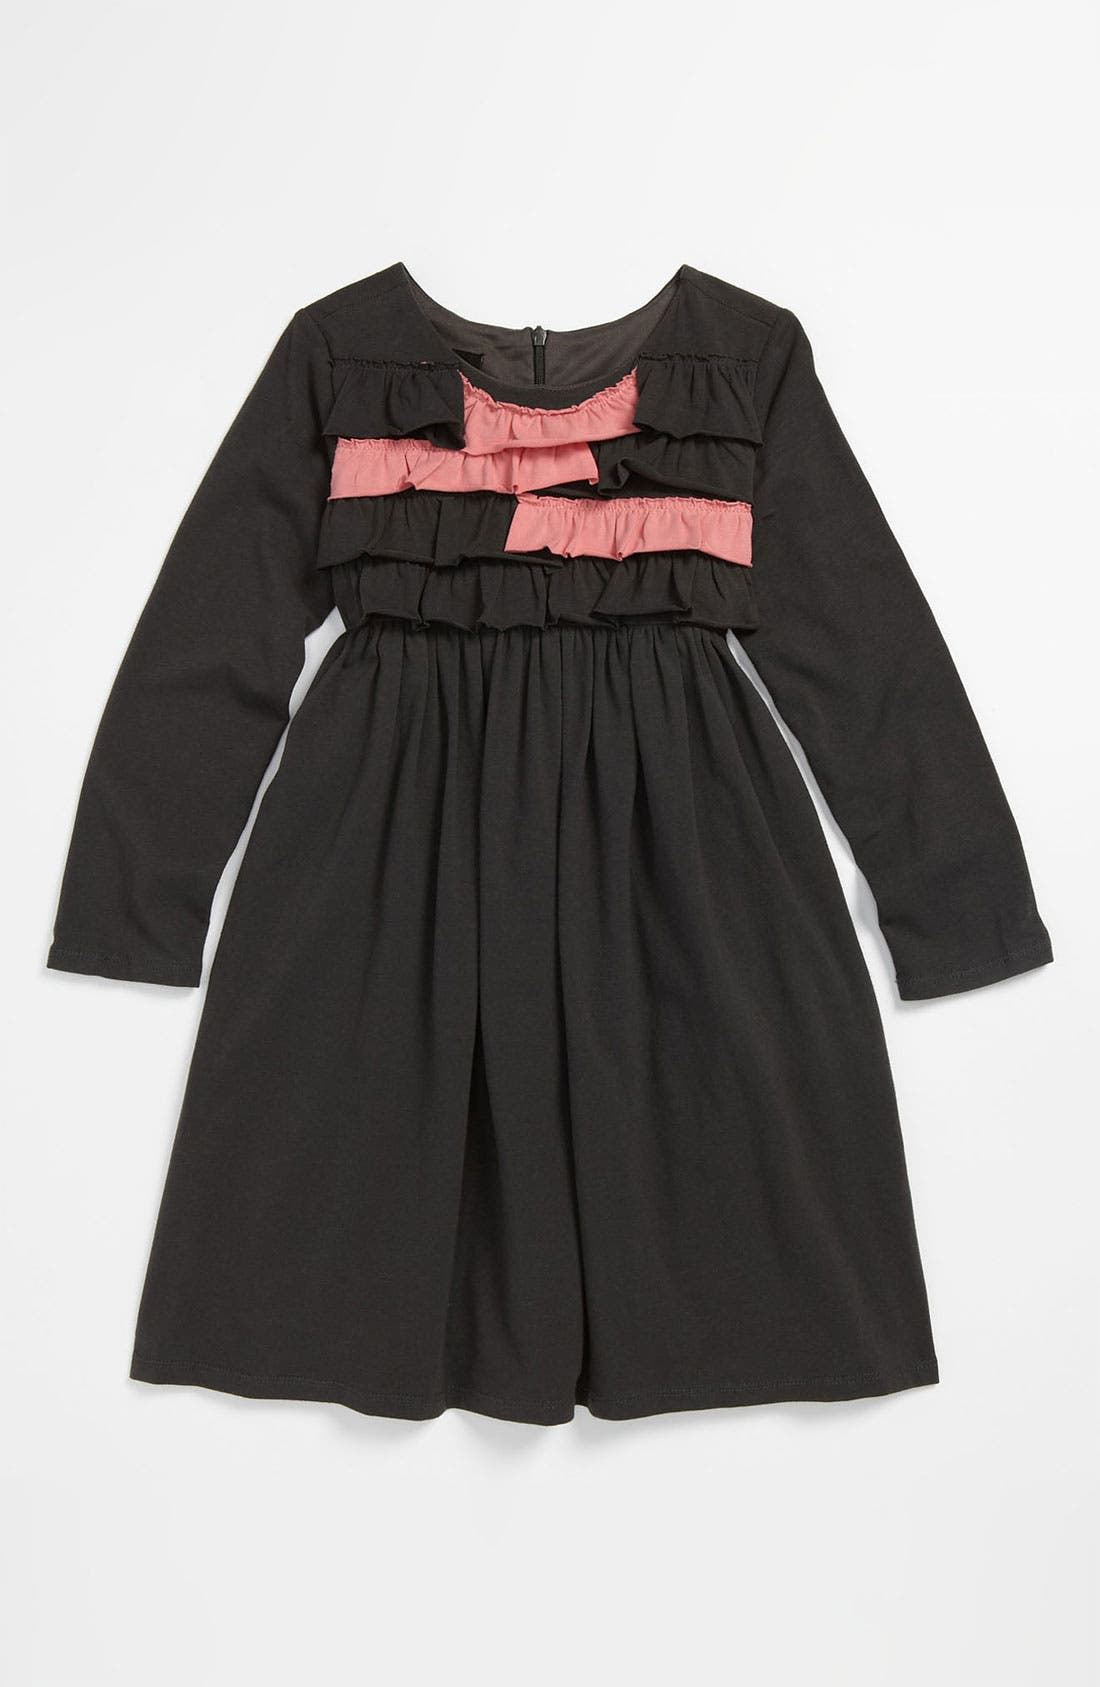 Alternate Image 1 Selected - Isobella & Chloe 'Darlene' Dress (Little Girls & Big Girls)